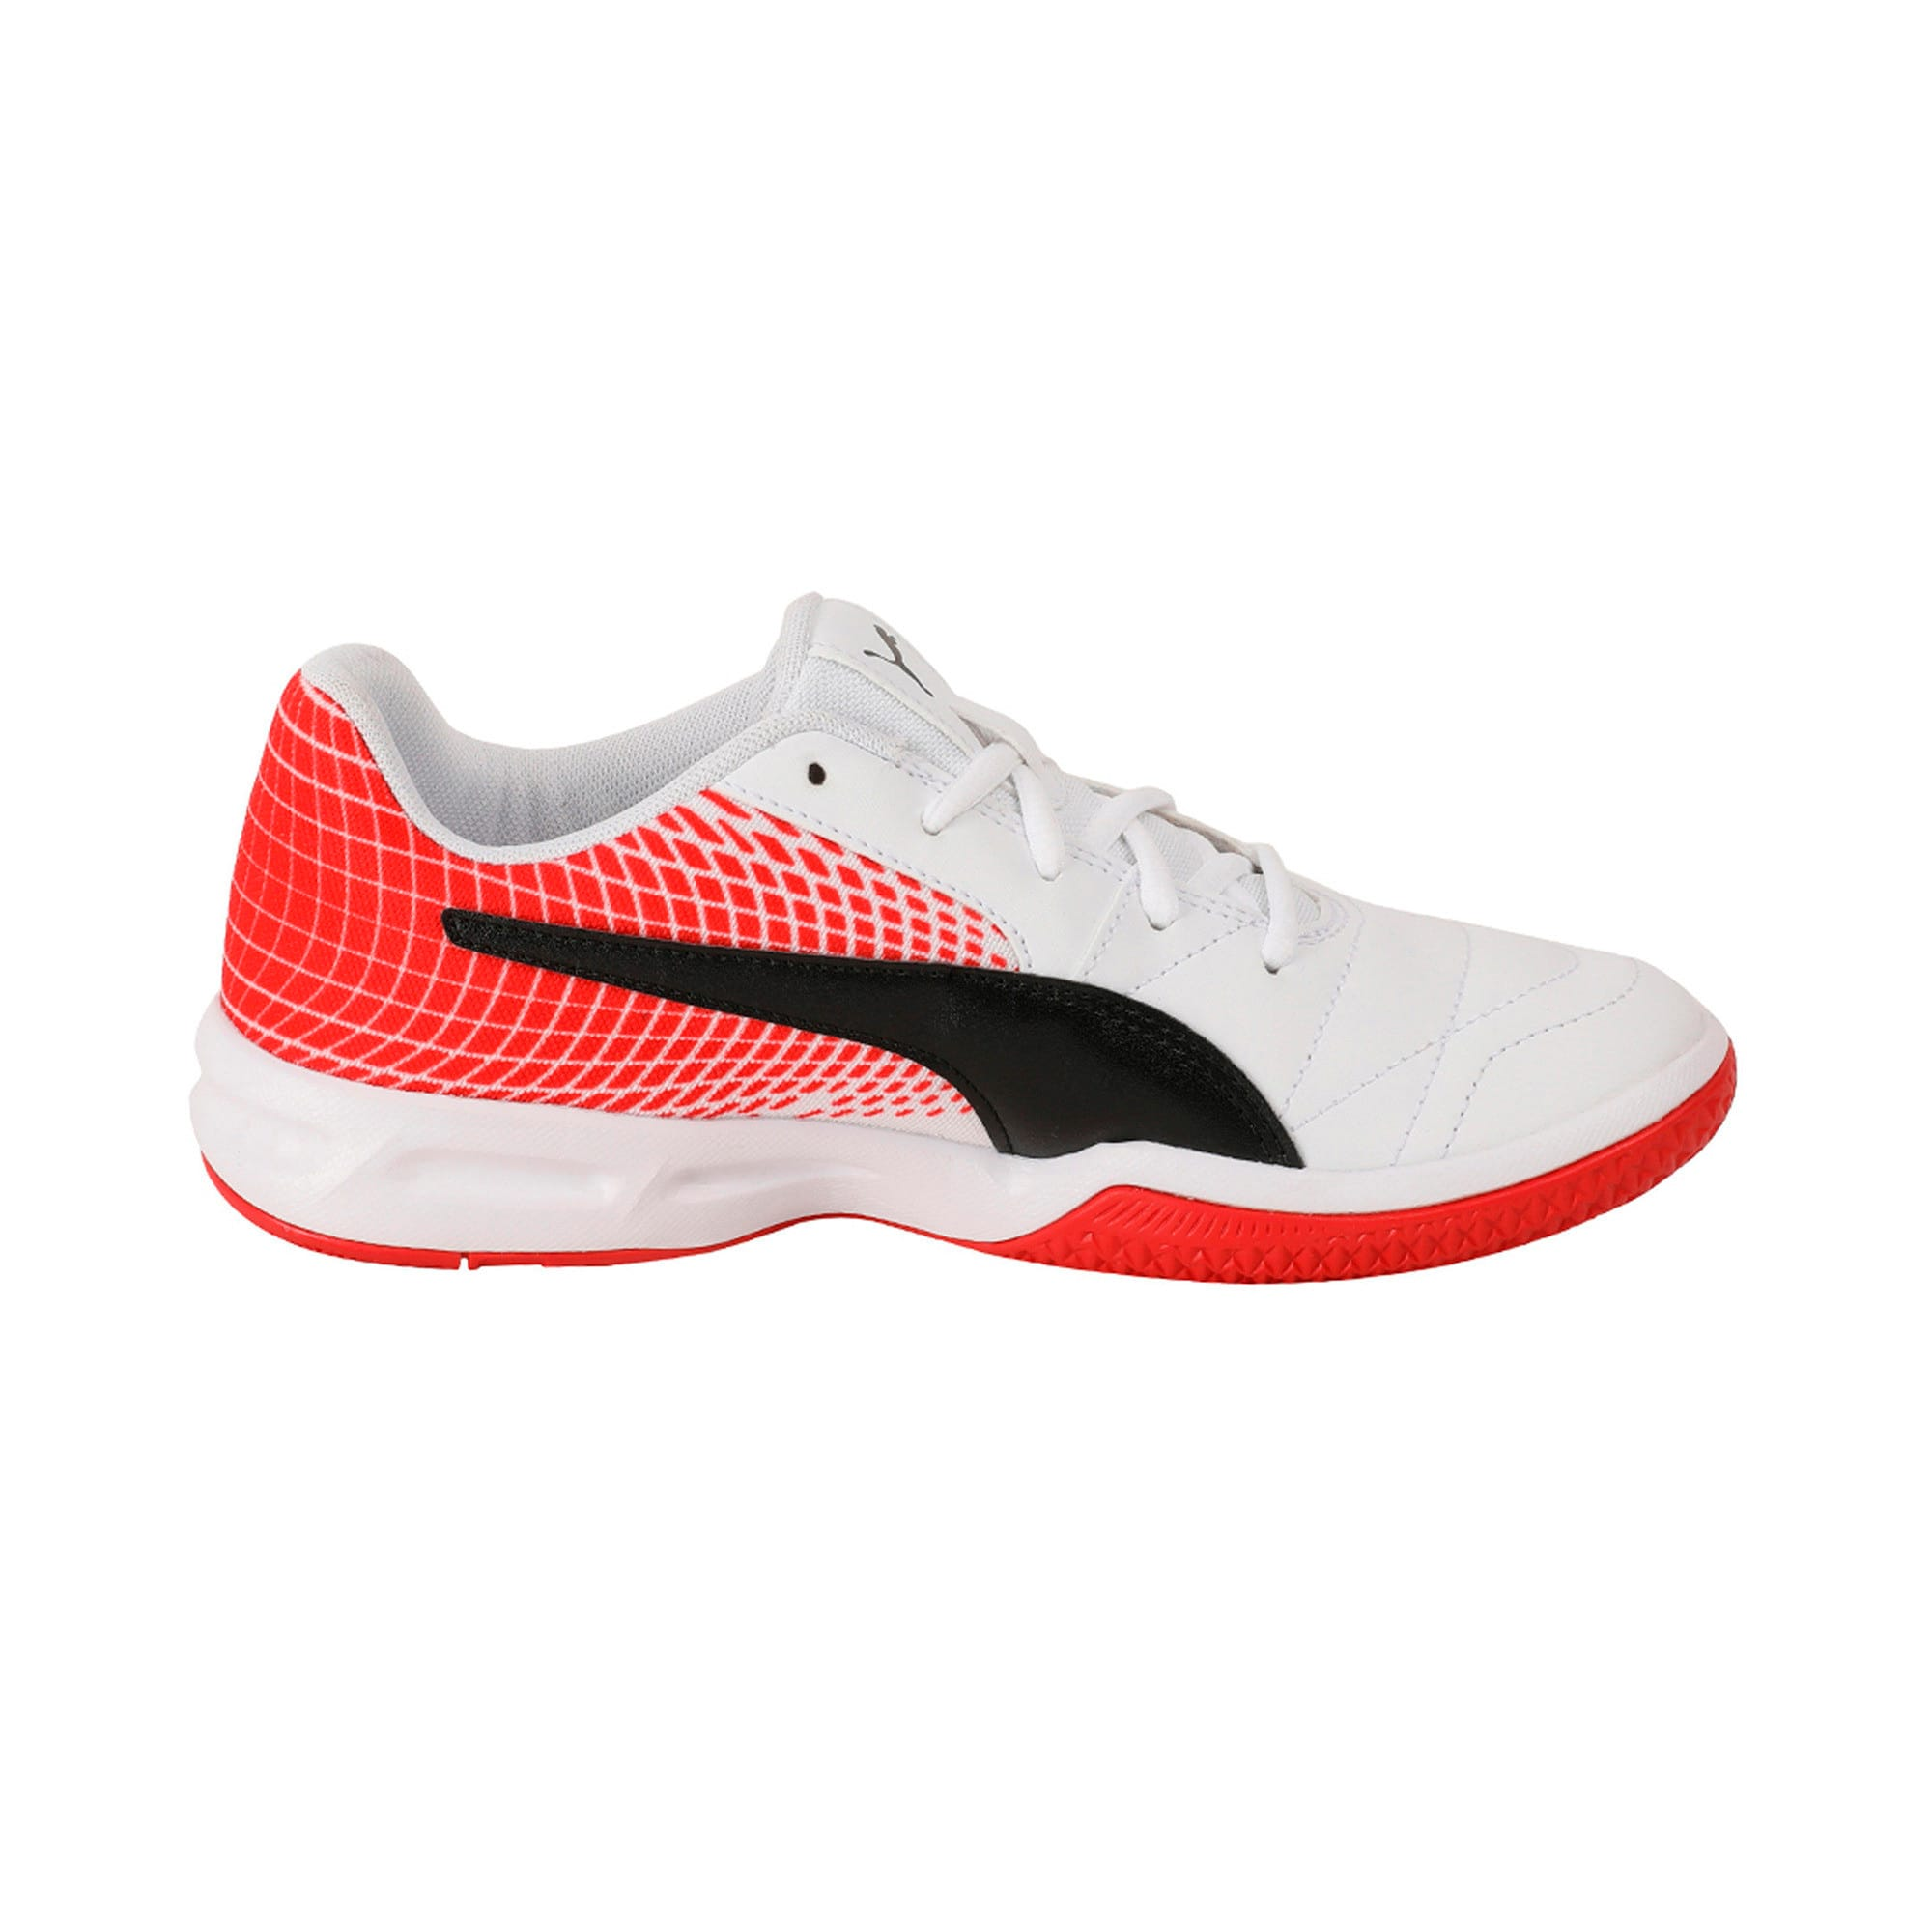 Thumbnail 5 of Veloz Indoor NG Kids' Training Shoes, White-Black-Flame Scarlet, medium-IND